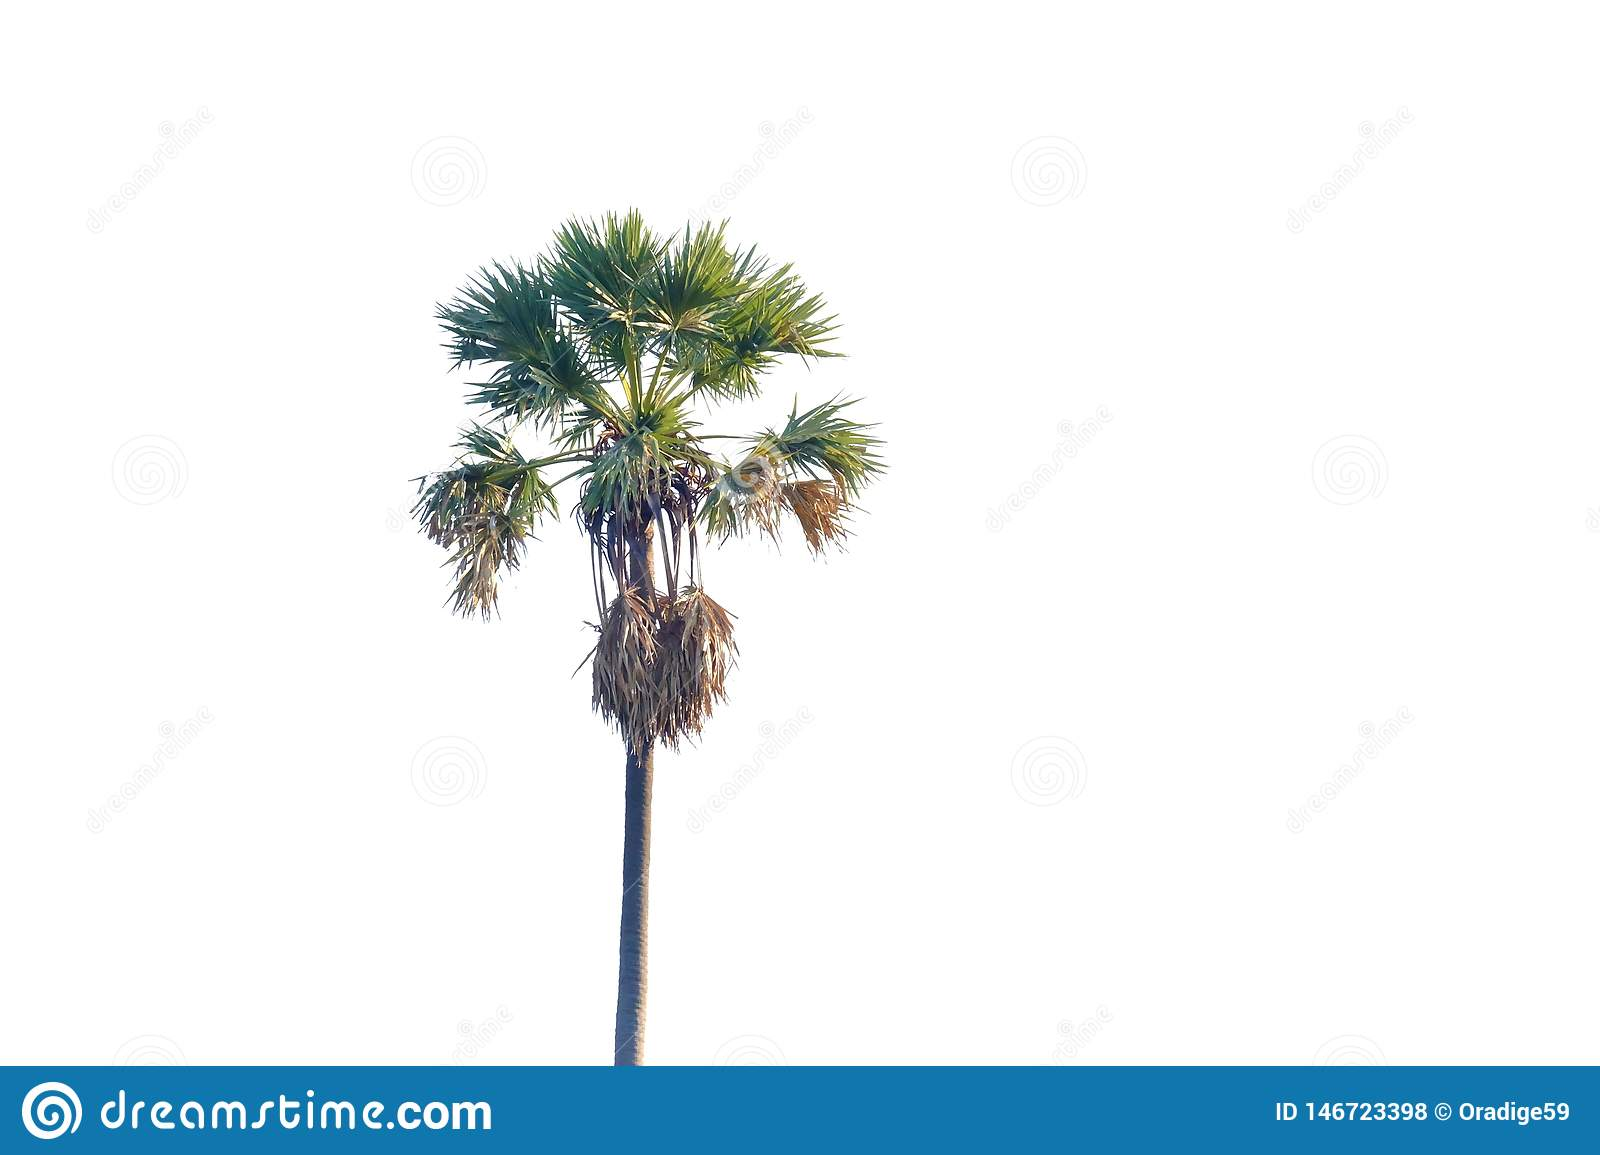 Sugar palm tree growing in a garden on white isolated background for green foliage backdrop